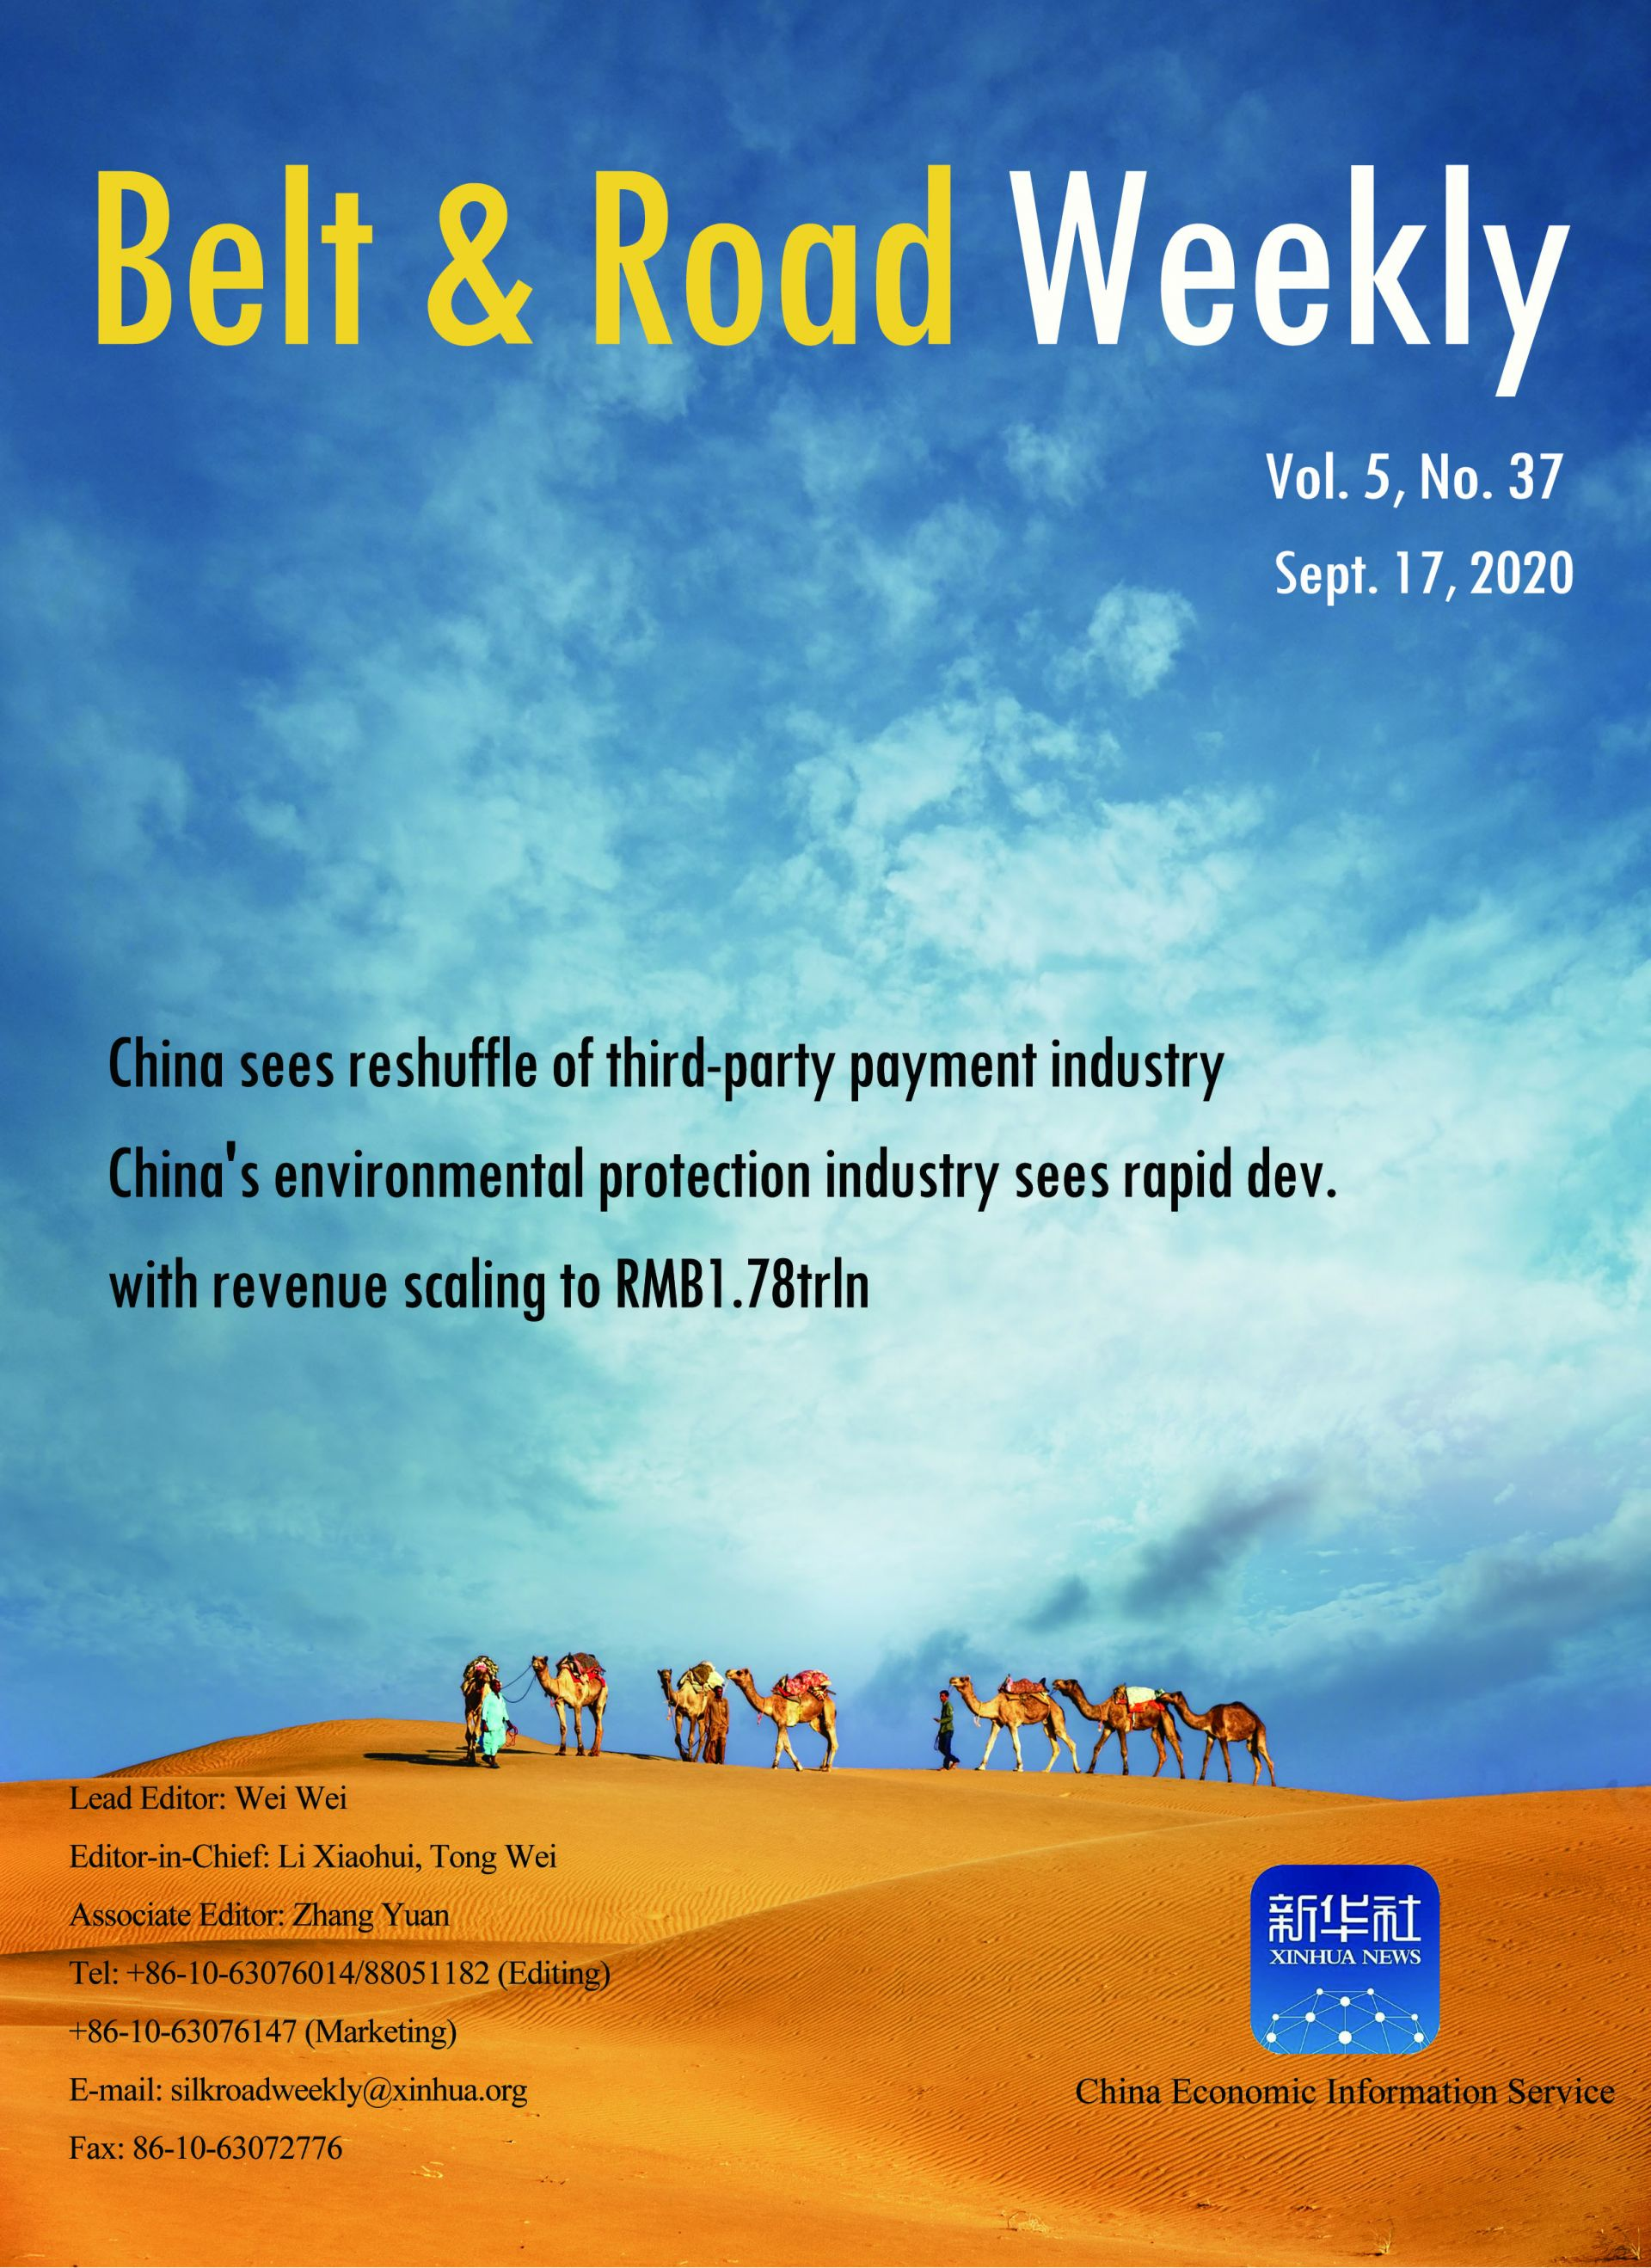 Belt and Road Weekly Vol. 5, No. 37